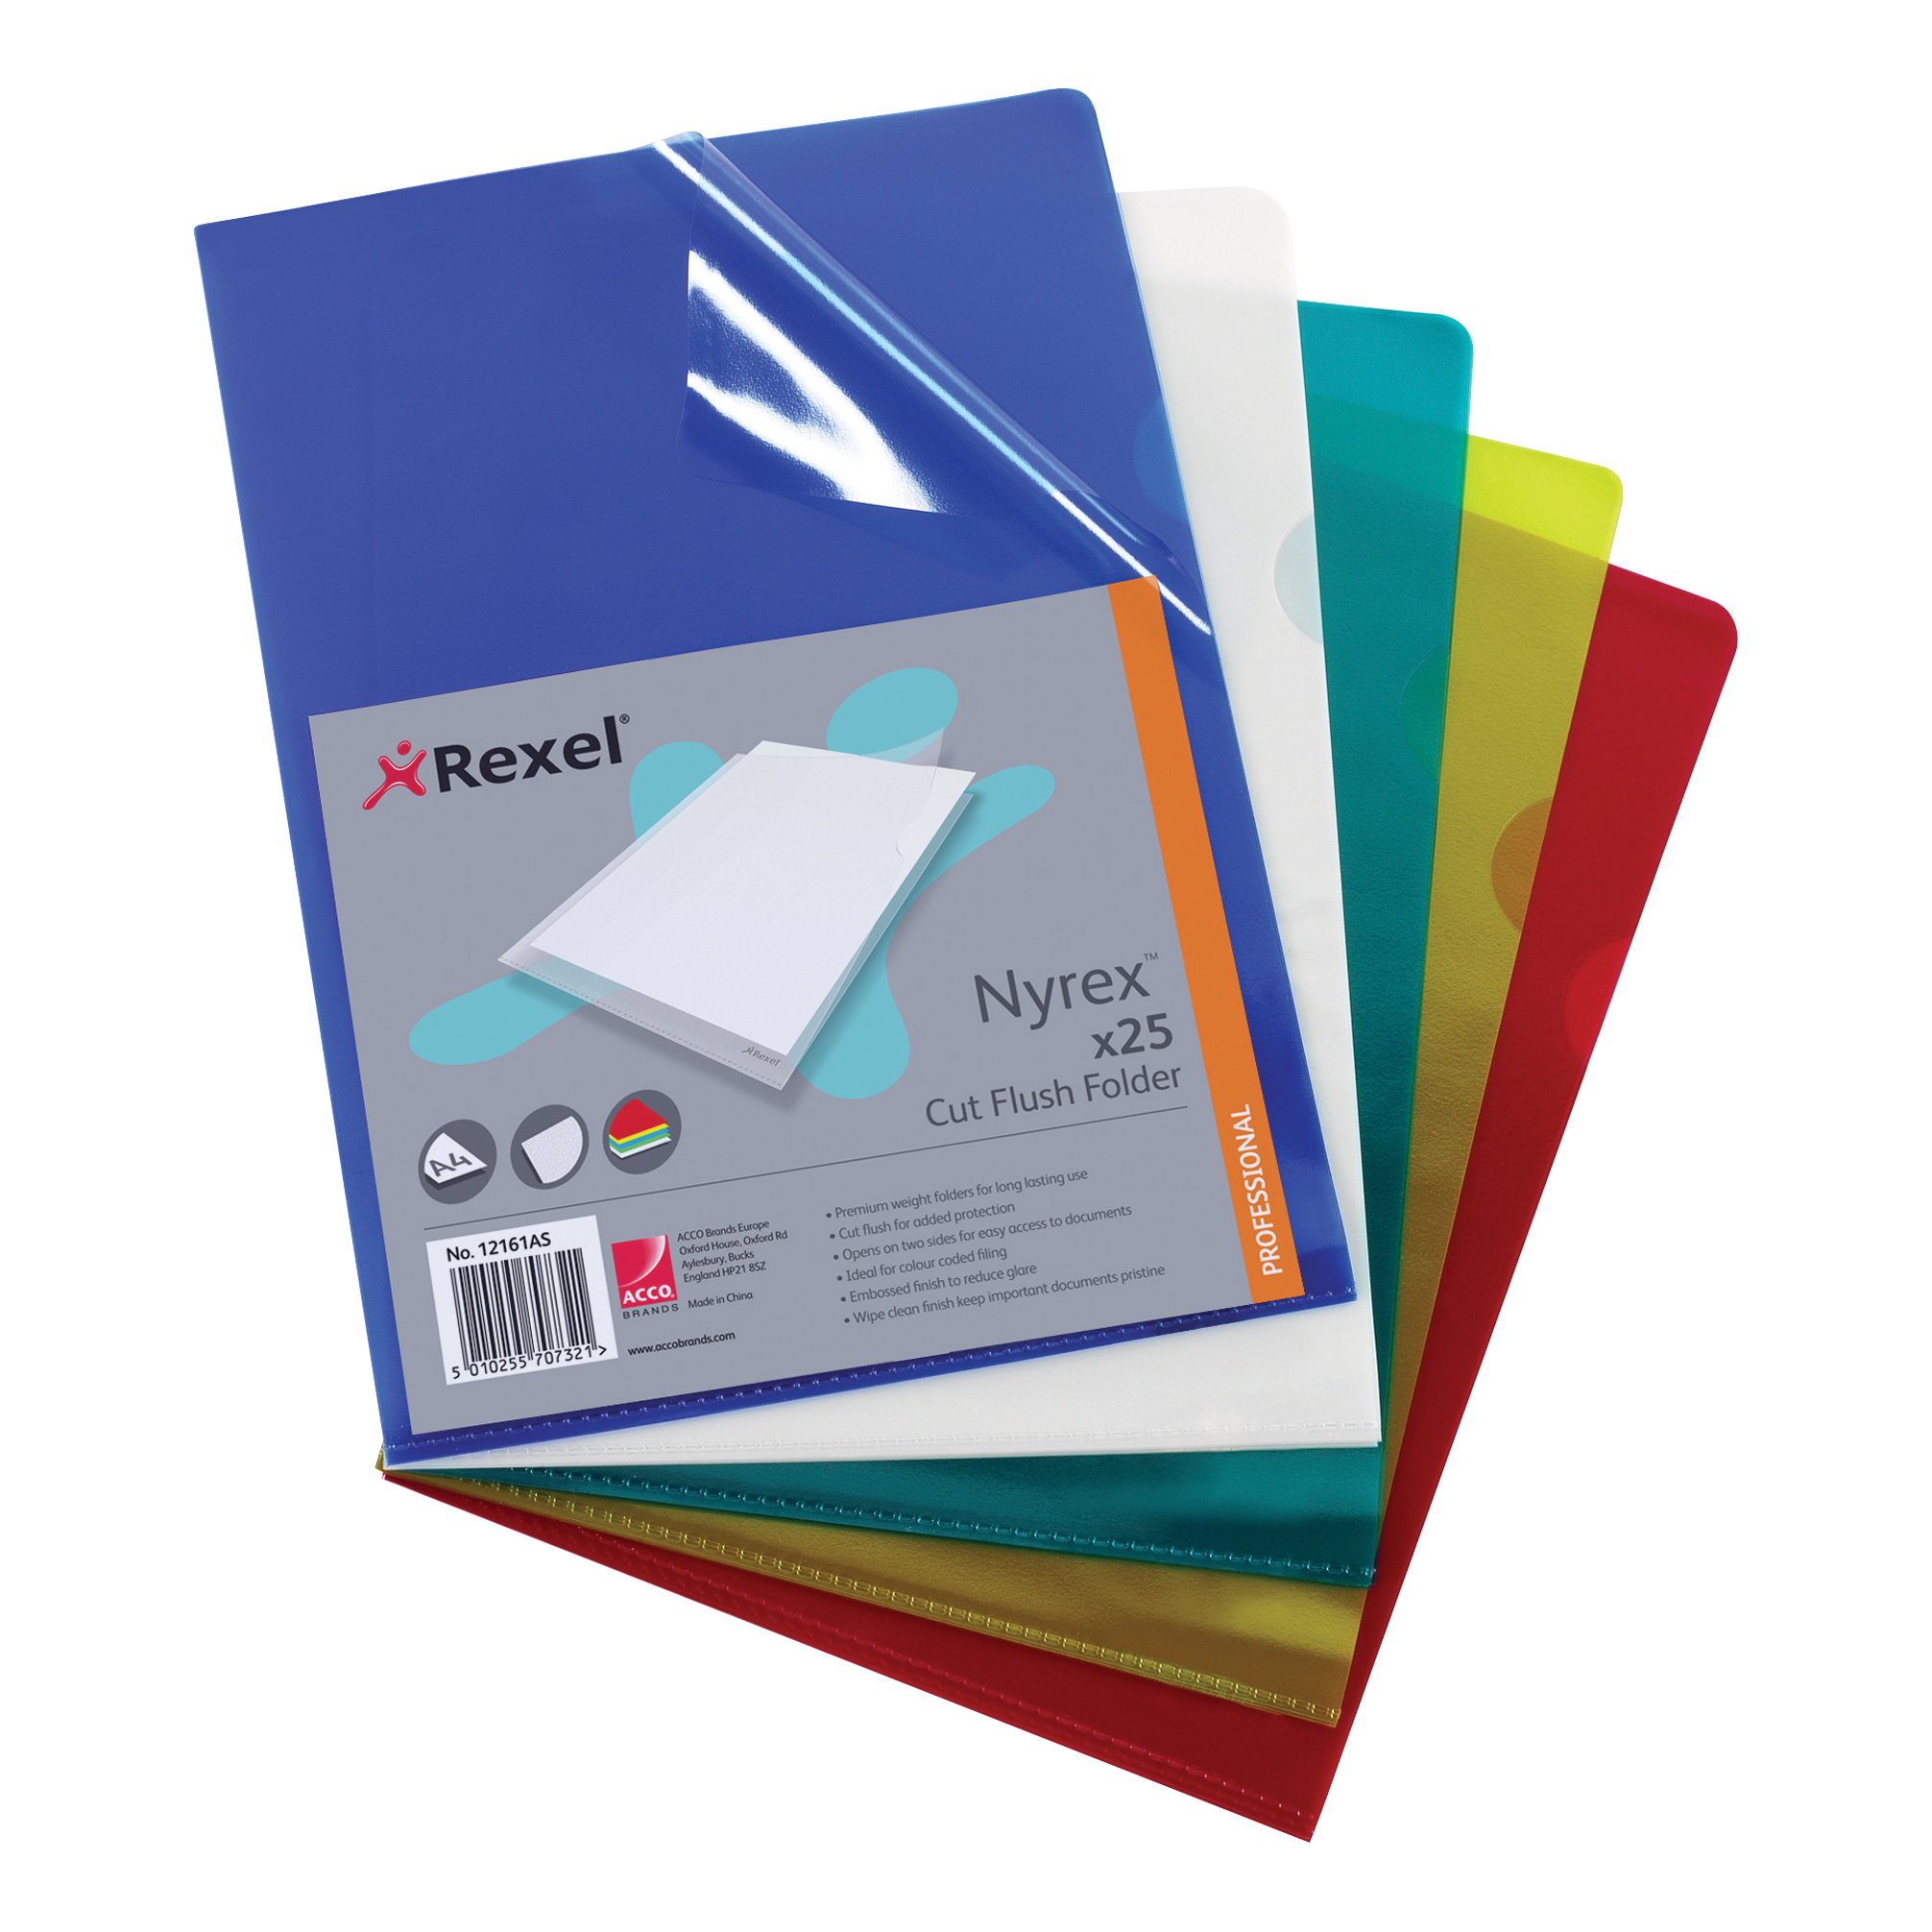 Rexel Nyrex Folder Cut Flush A4 Blue Ref 12161BU Pack 25